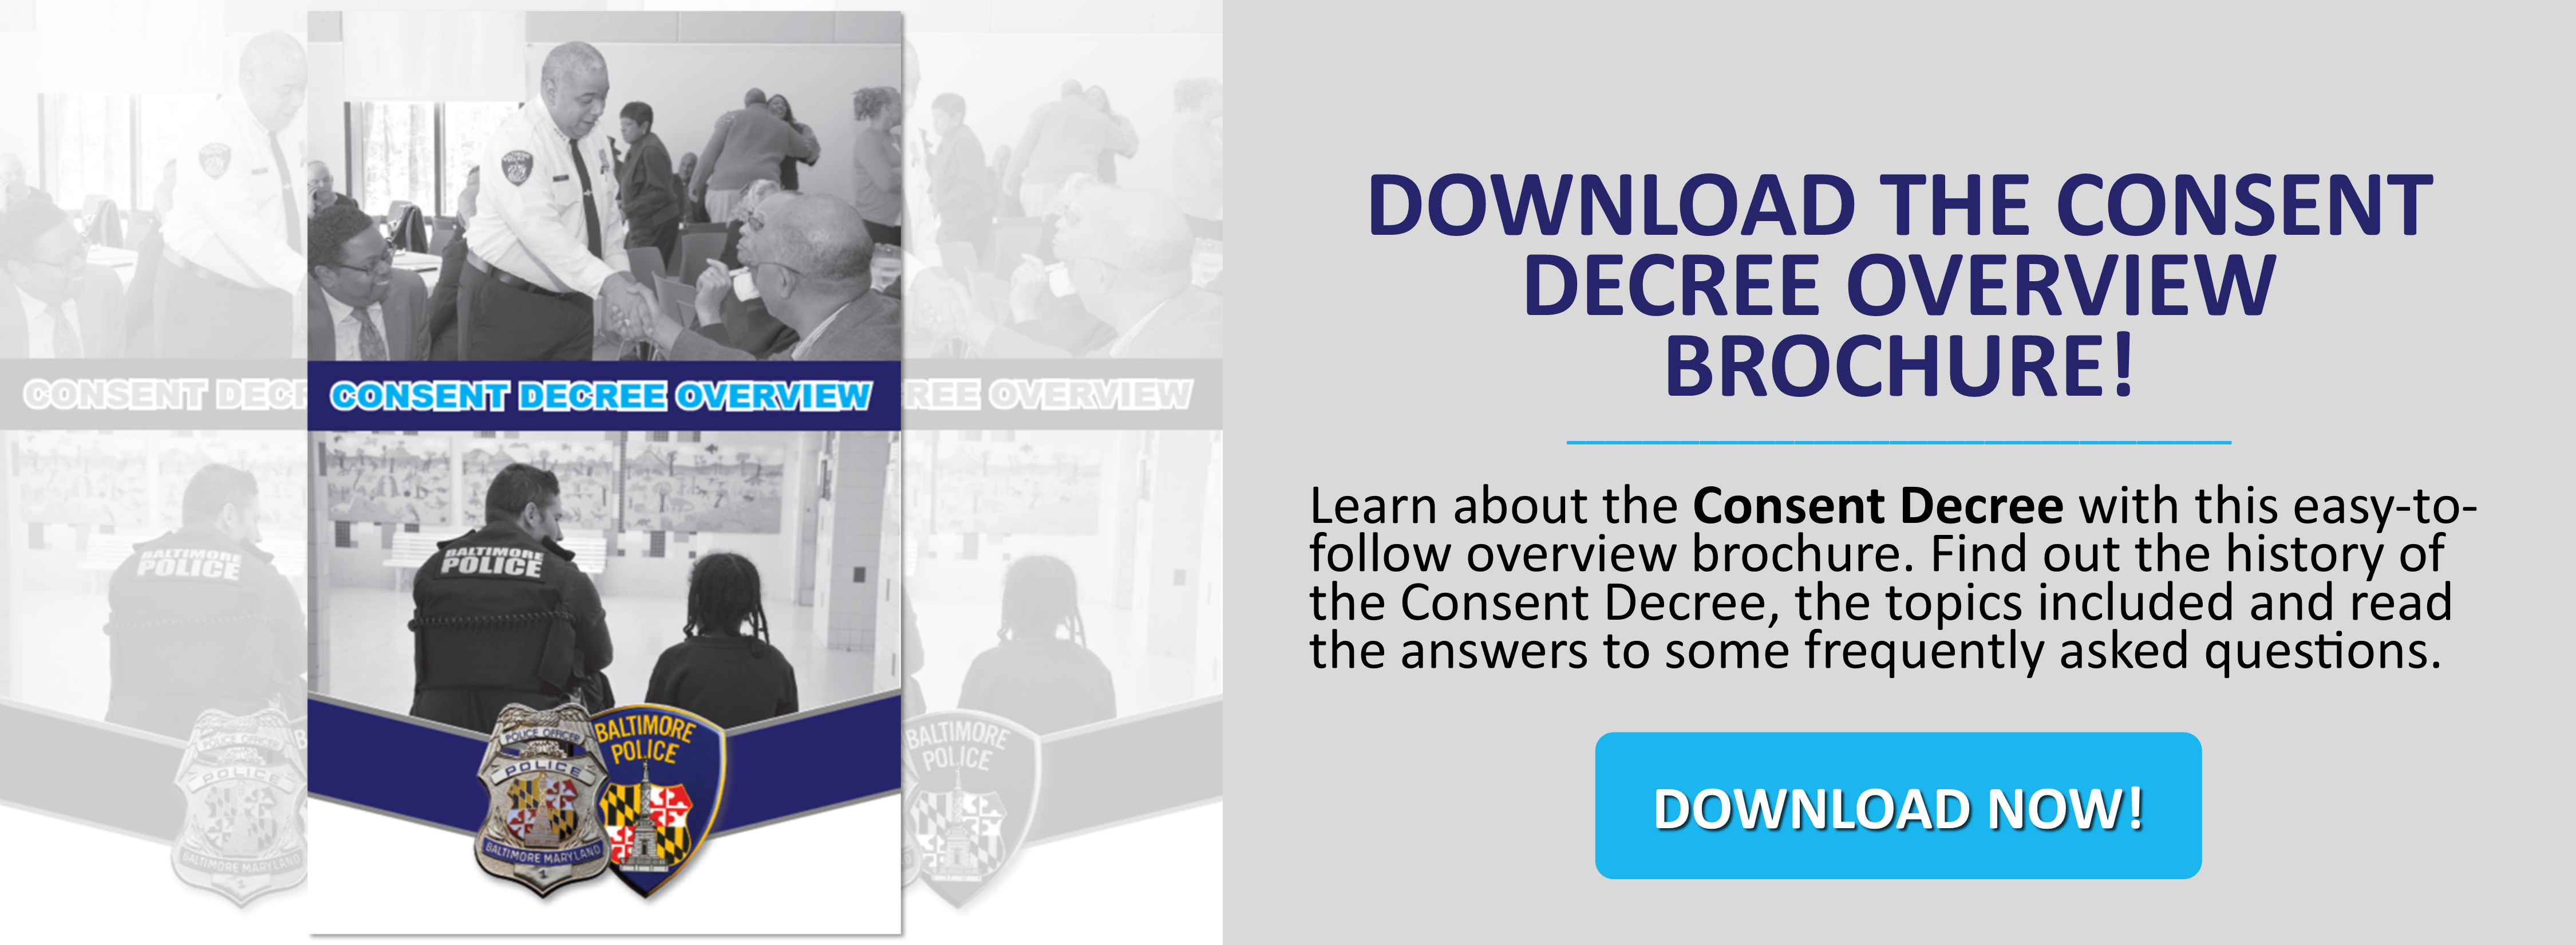 Consent Decree Overview